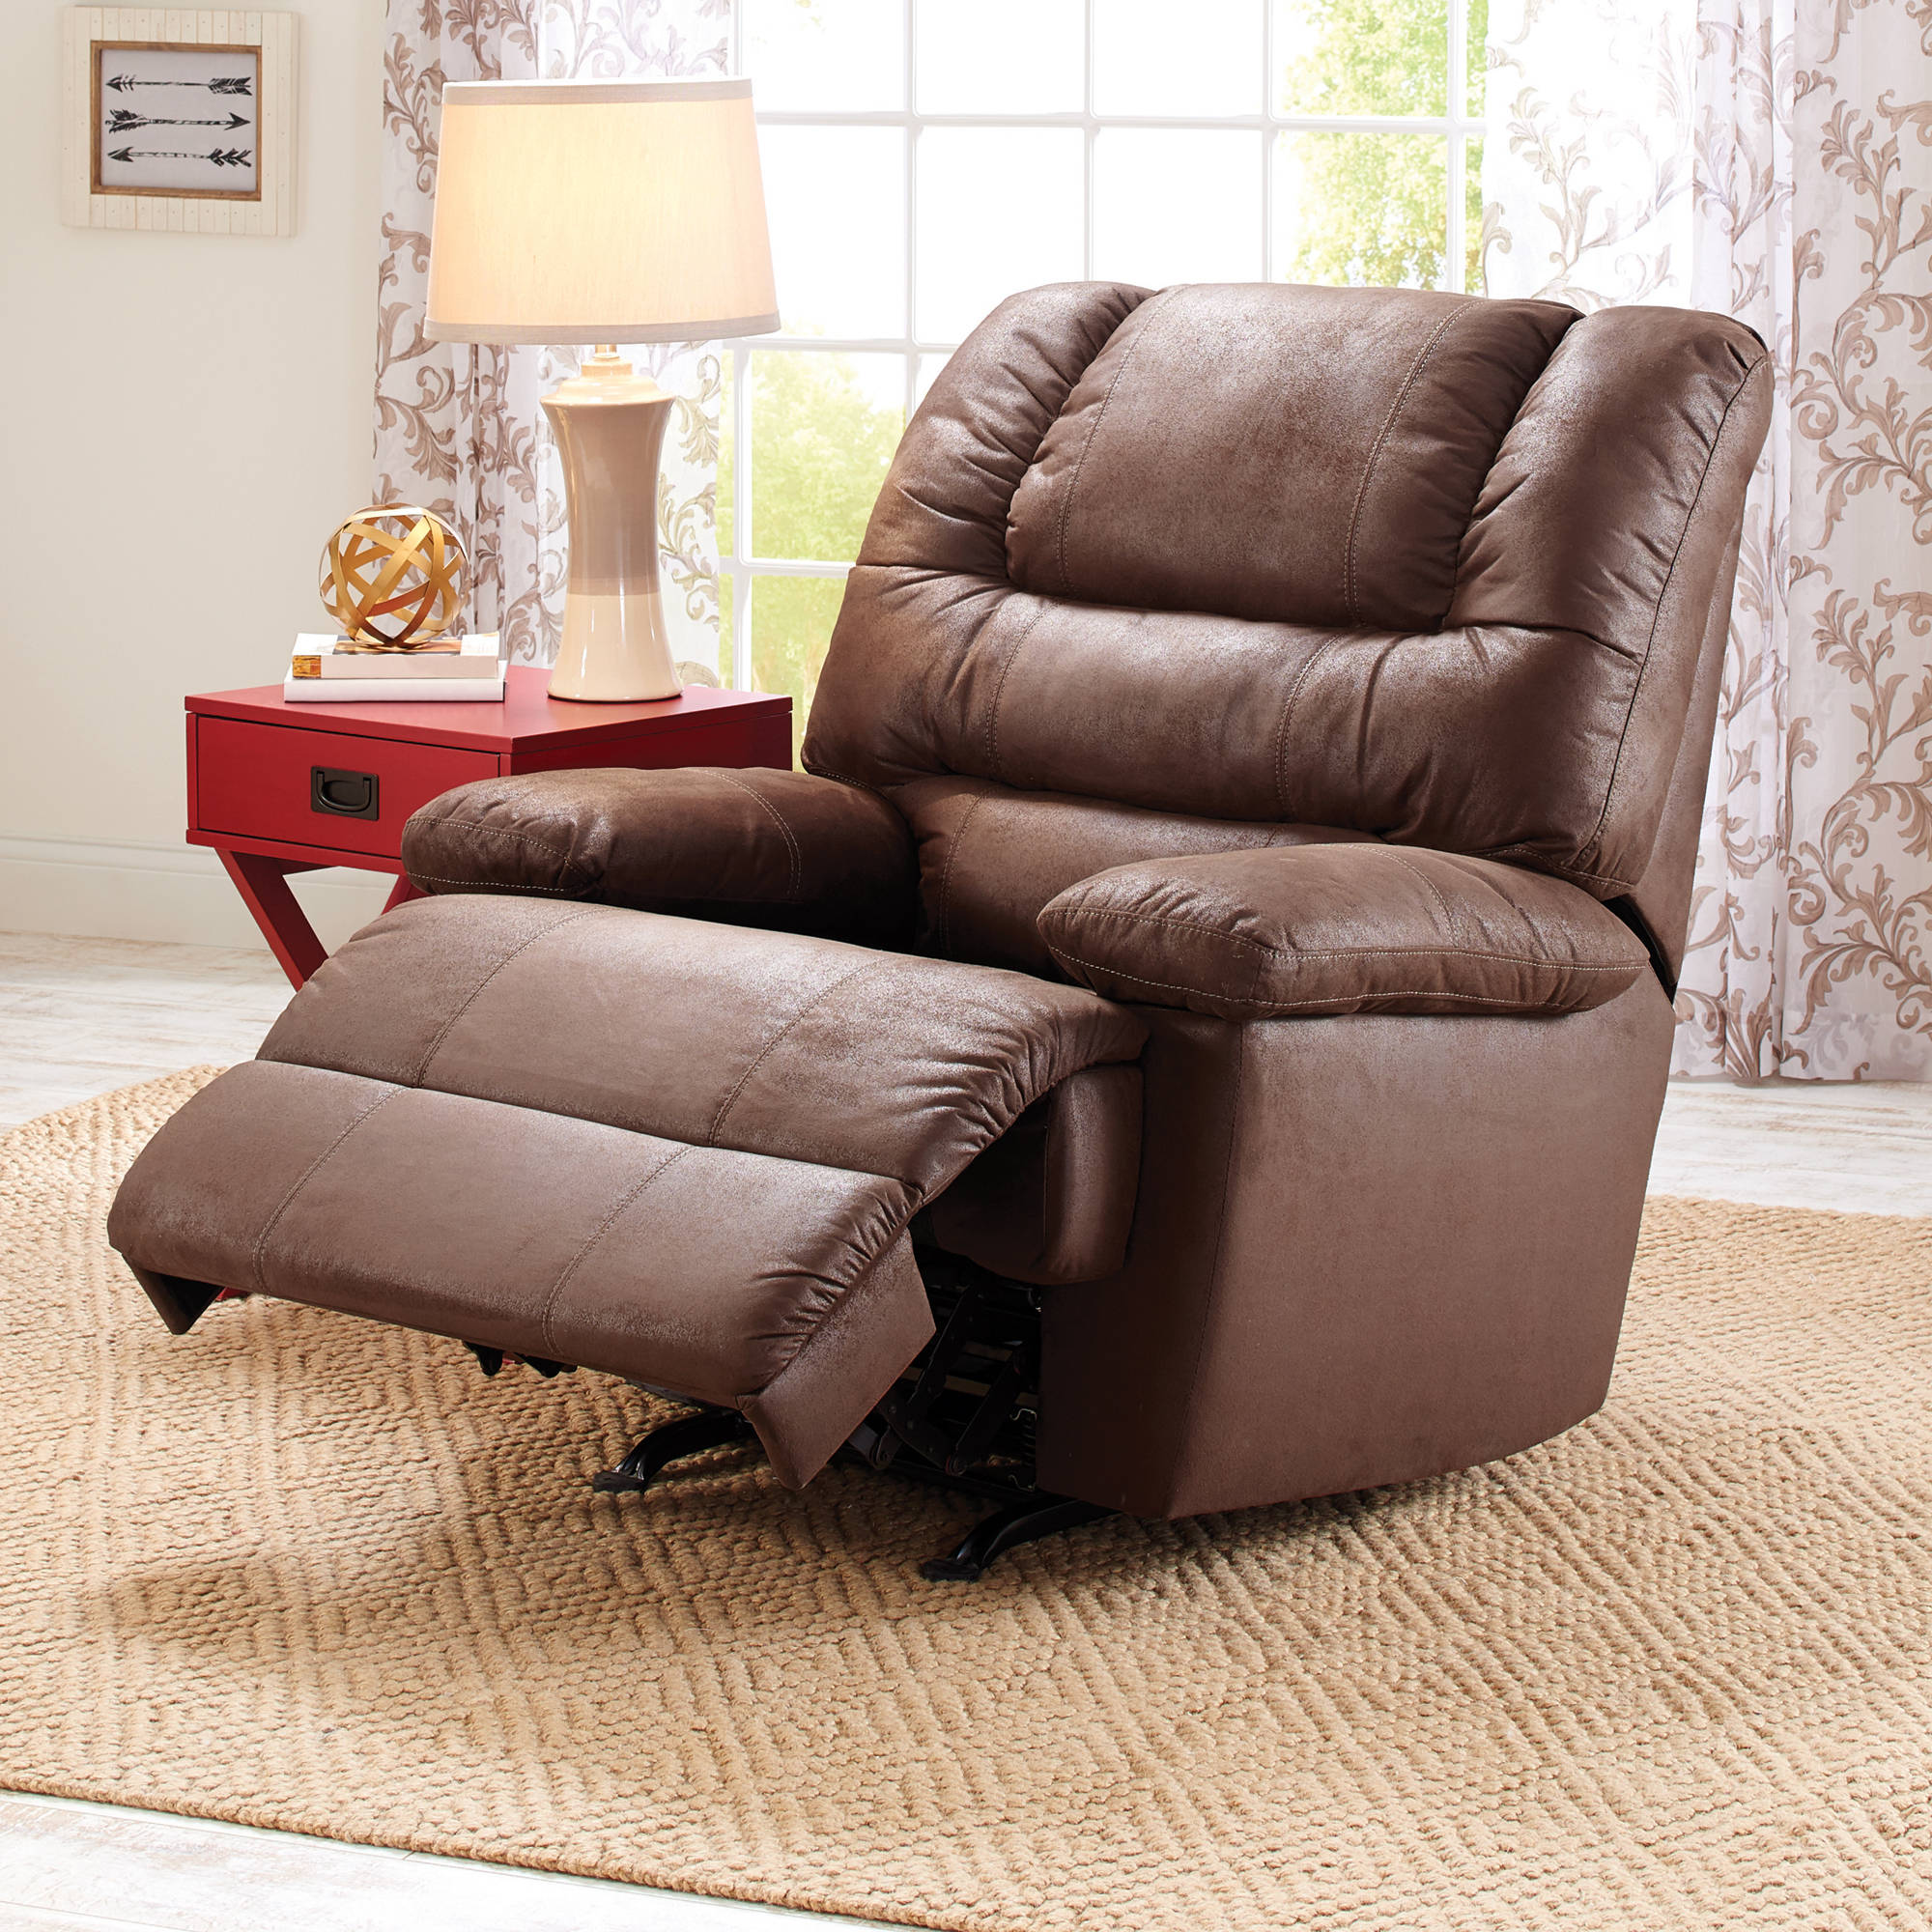 Better Homes and Gardens Deluxe Recliner Walmartcom